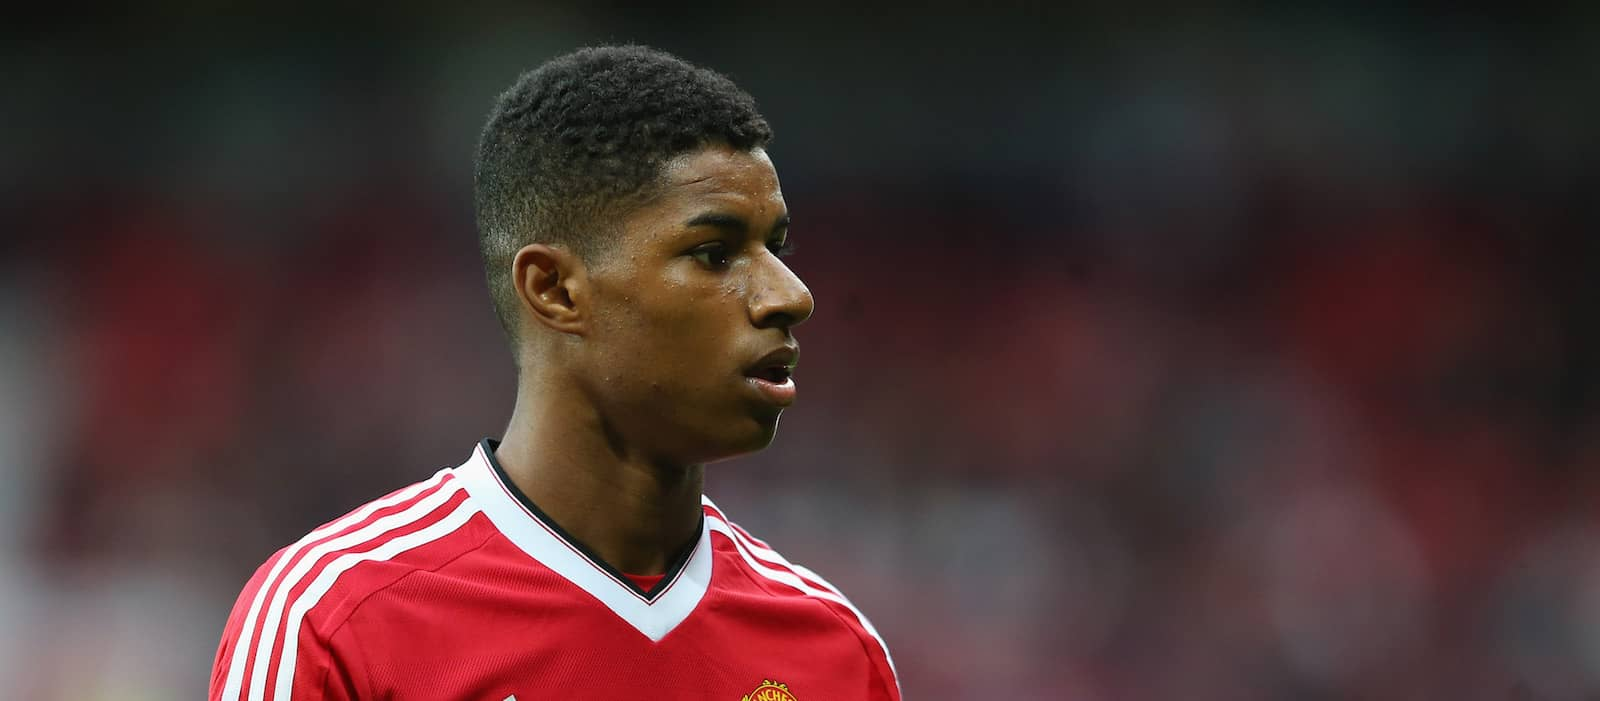 Video: Marcus Rashford shows off impressive football skills in the gym